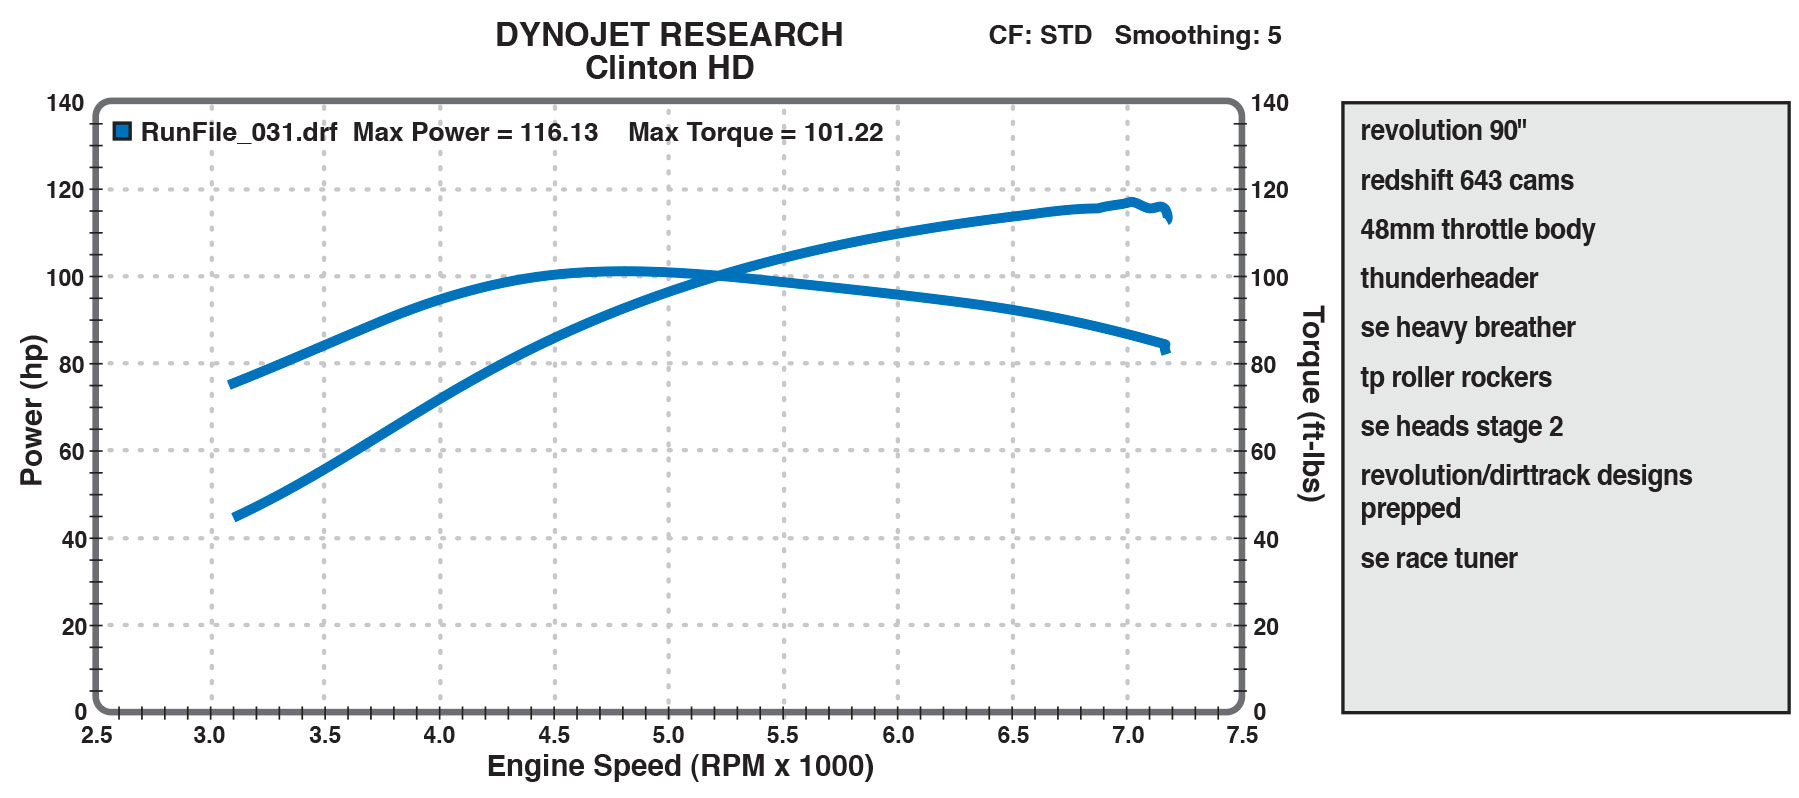 90cid dyno chart from Clinton